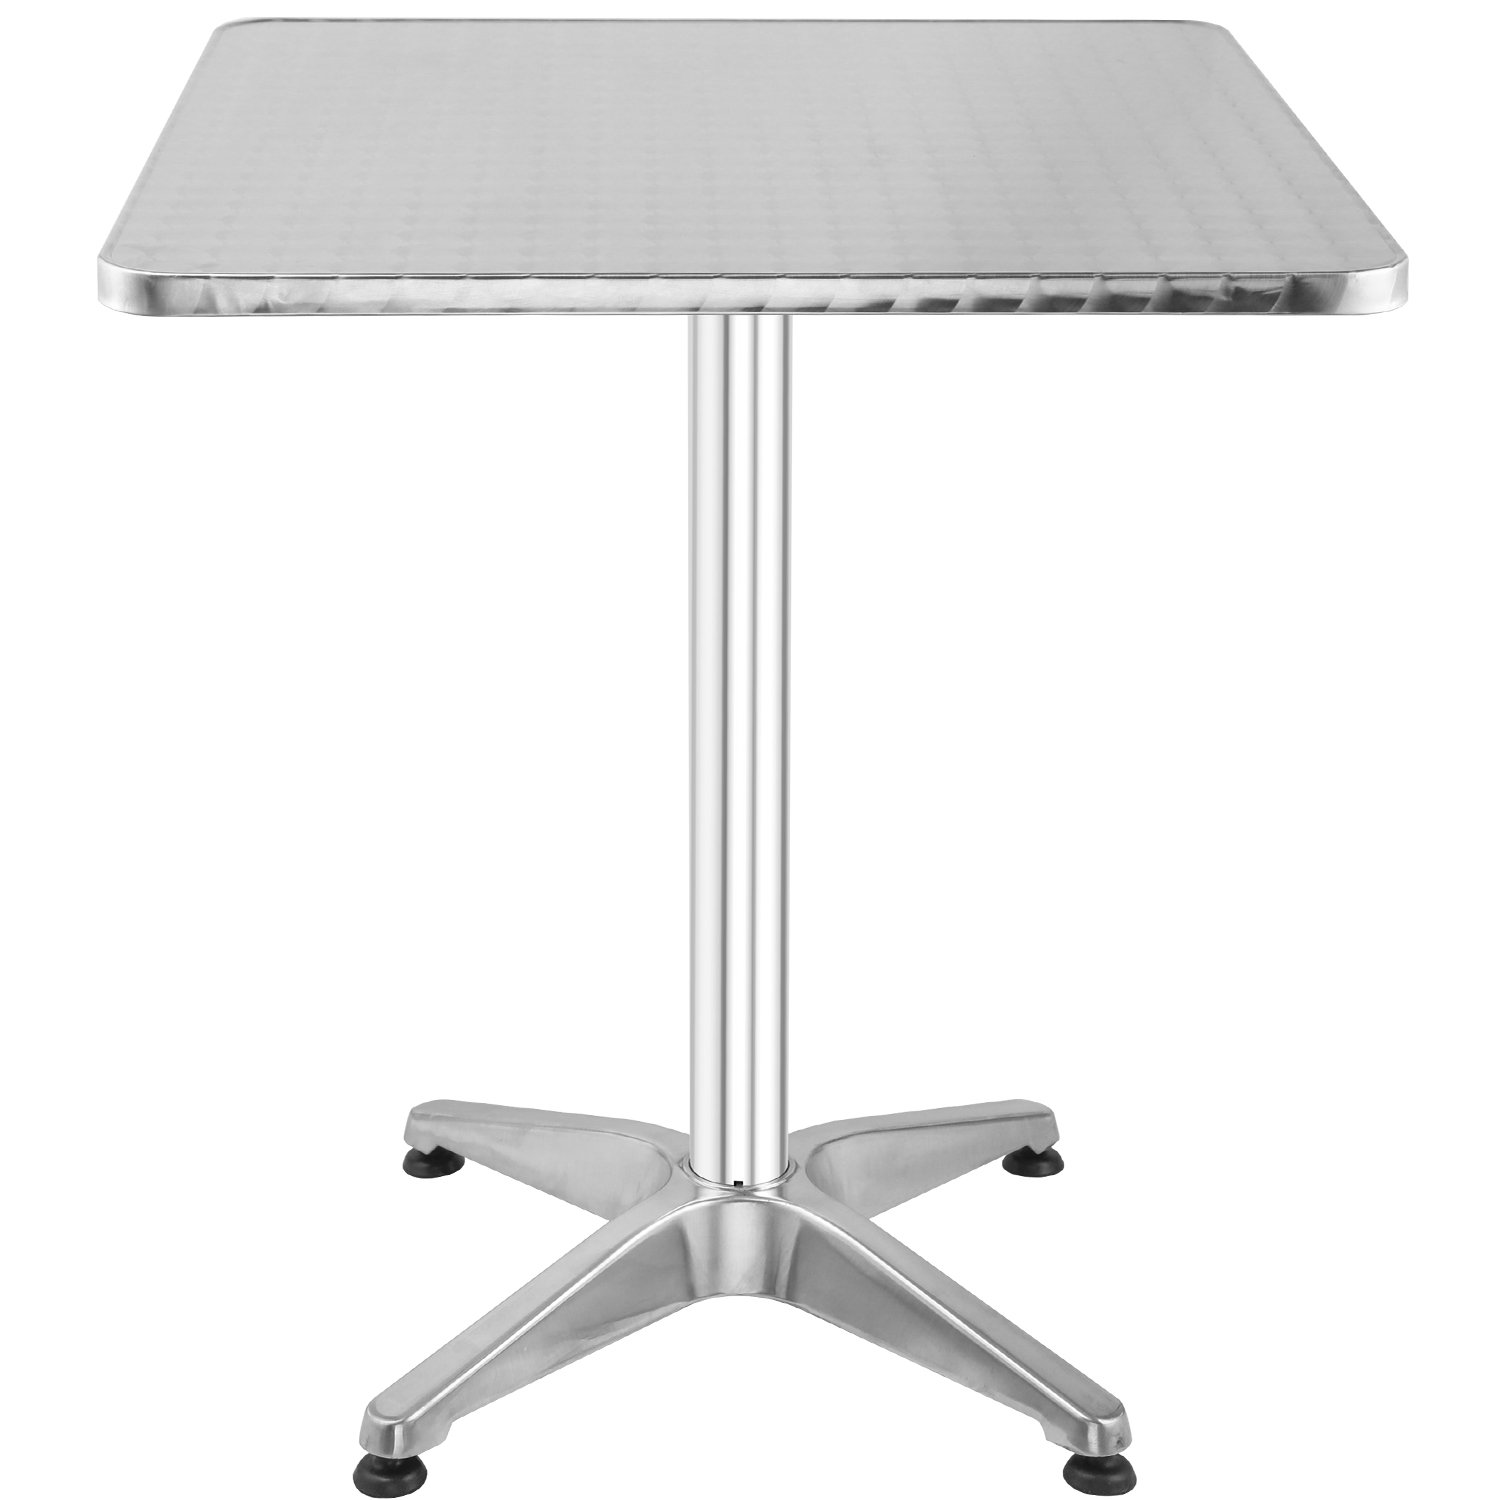 Hromee Bistro Bar Table 23.5'' Aluminum Square Tabletop for Indoor Outdoor, Silver